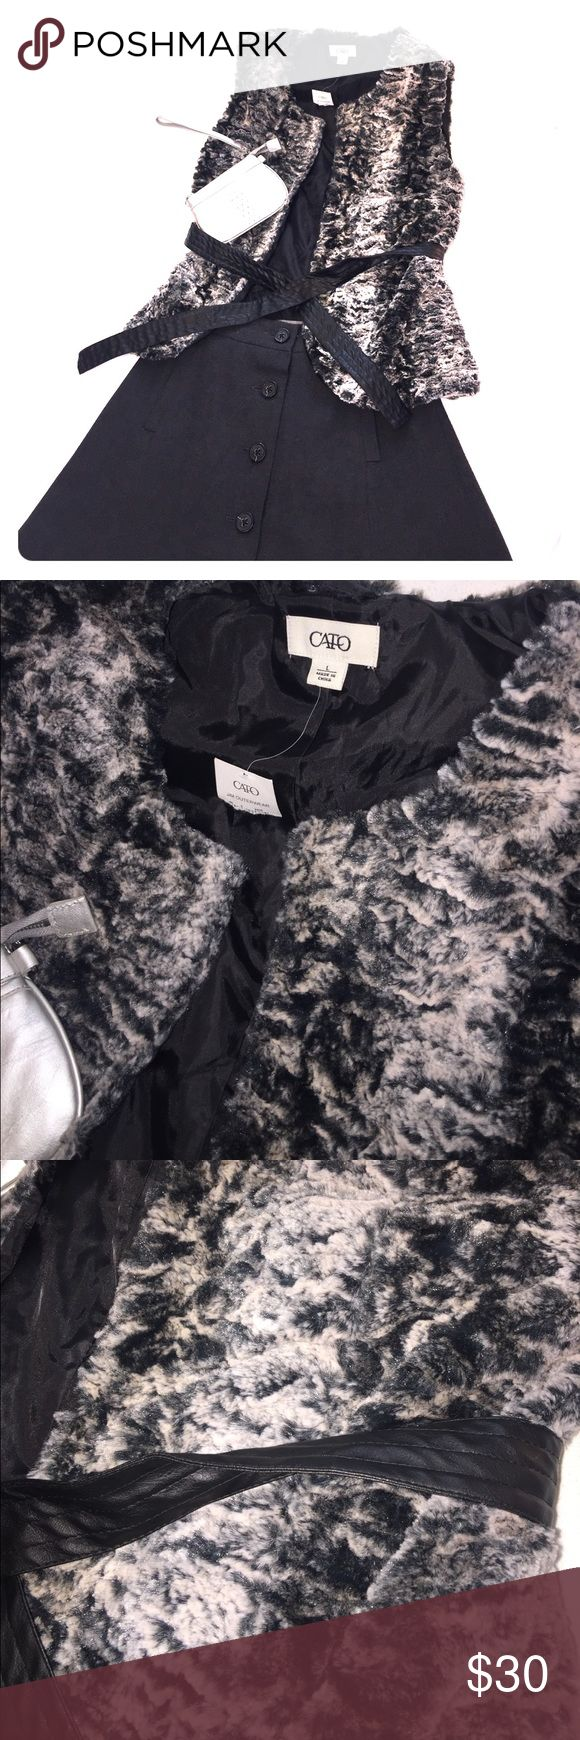 NWT Faux fur vest with faux leather belt. Never worn. Super soft faux fur. Gray, black coloring. Fully lined. Size large but can fit medium and small because it can be cinched at the waist with the belt. Smoke-free home. Jackets & Coats Vests